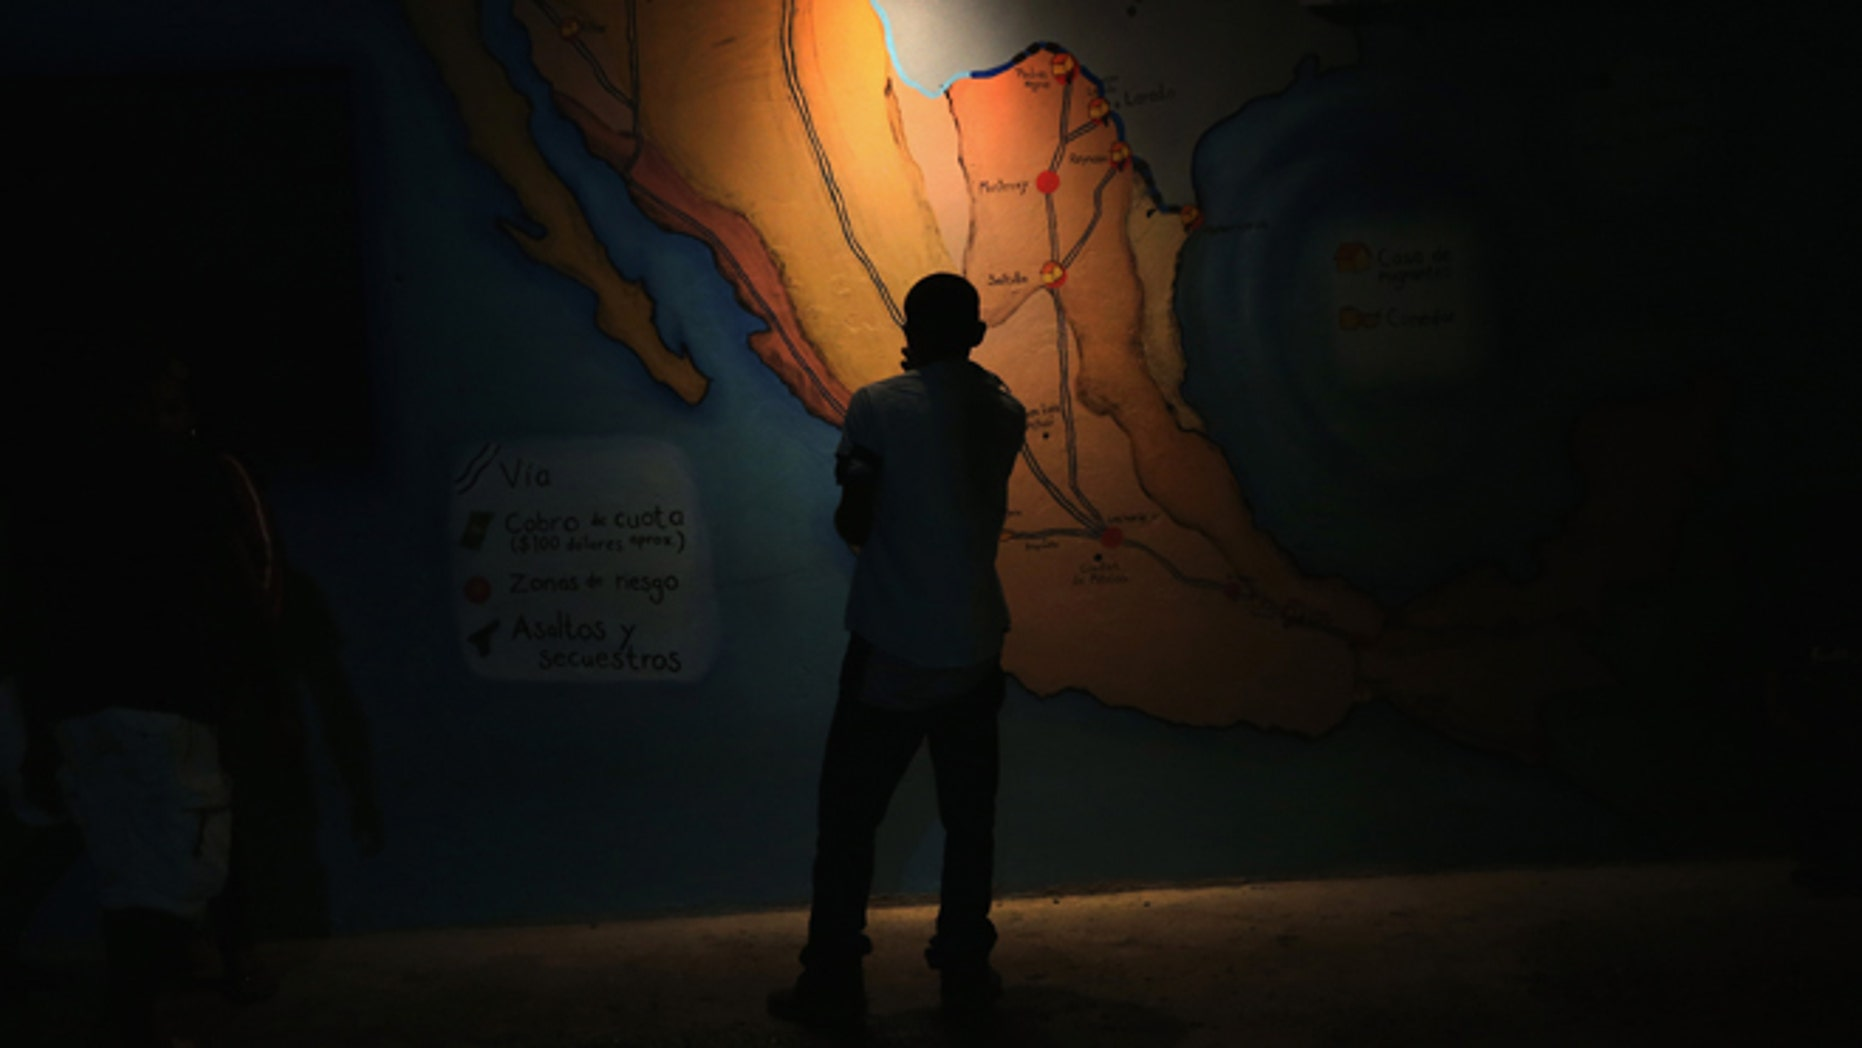 A Honduran immigrant inspects map of Mexico showing train routes leading north at a shelter for undocumented immigrants on September 14, 2014 in Tenosique, Mexico.(Photo by John Moore/Getty Images)